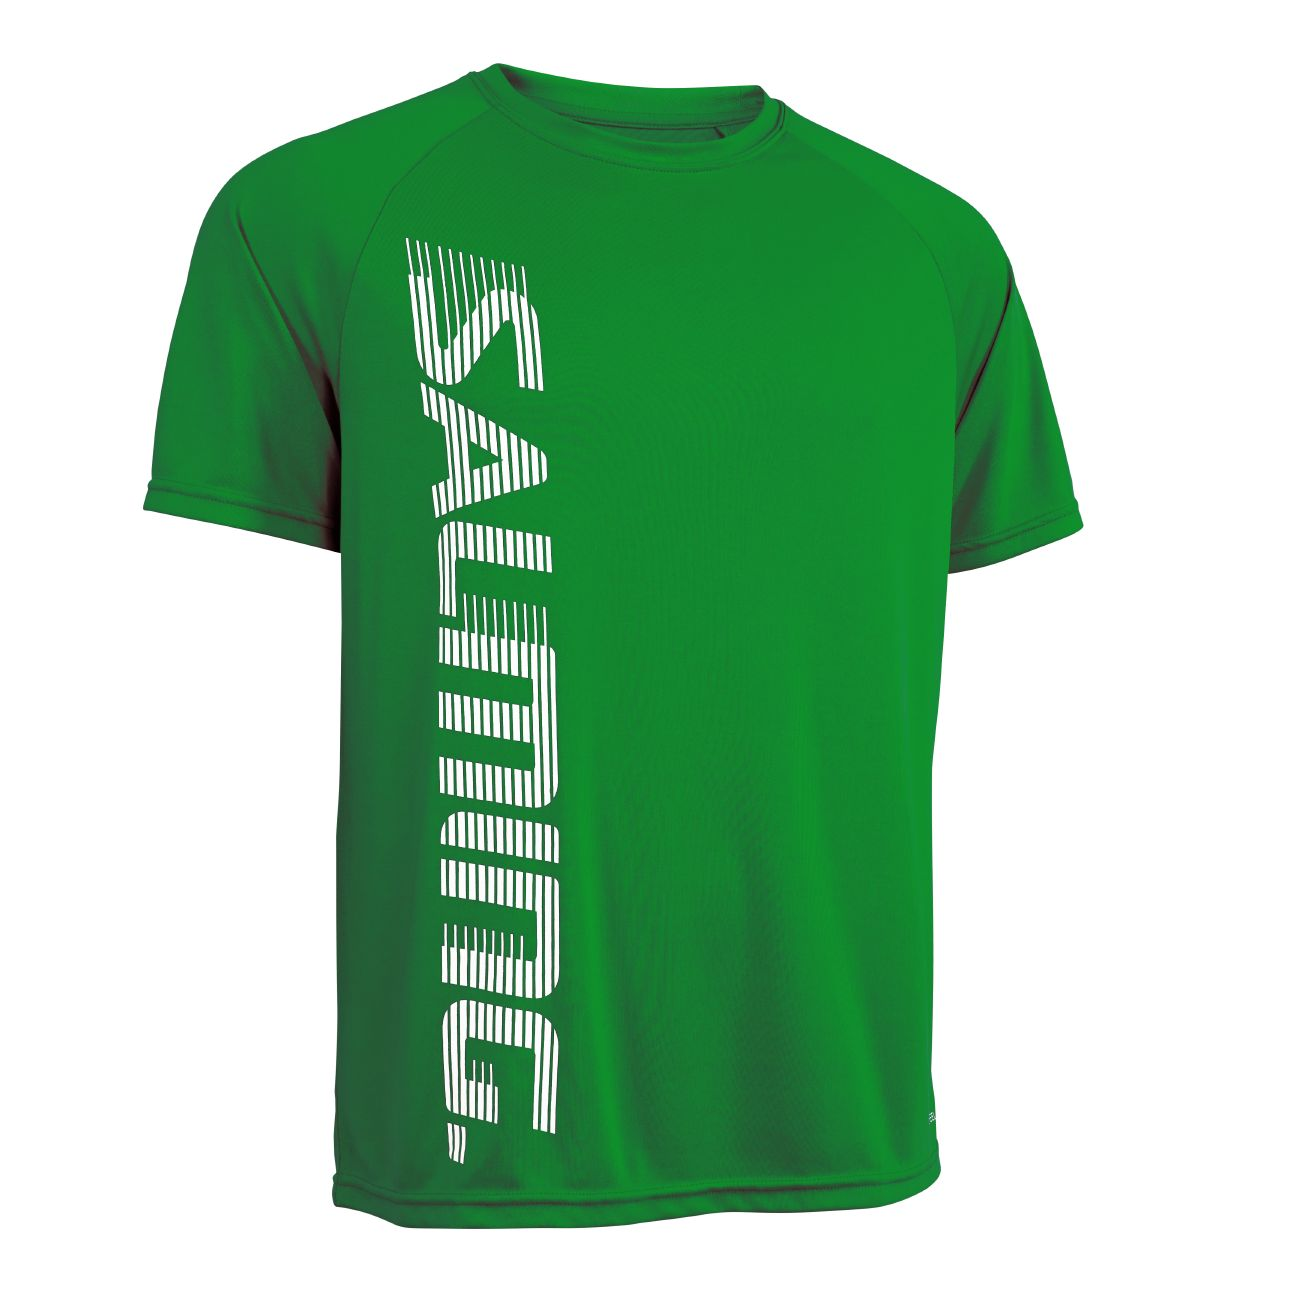 Salming Training Tee 2.0 Červená, S